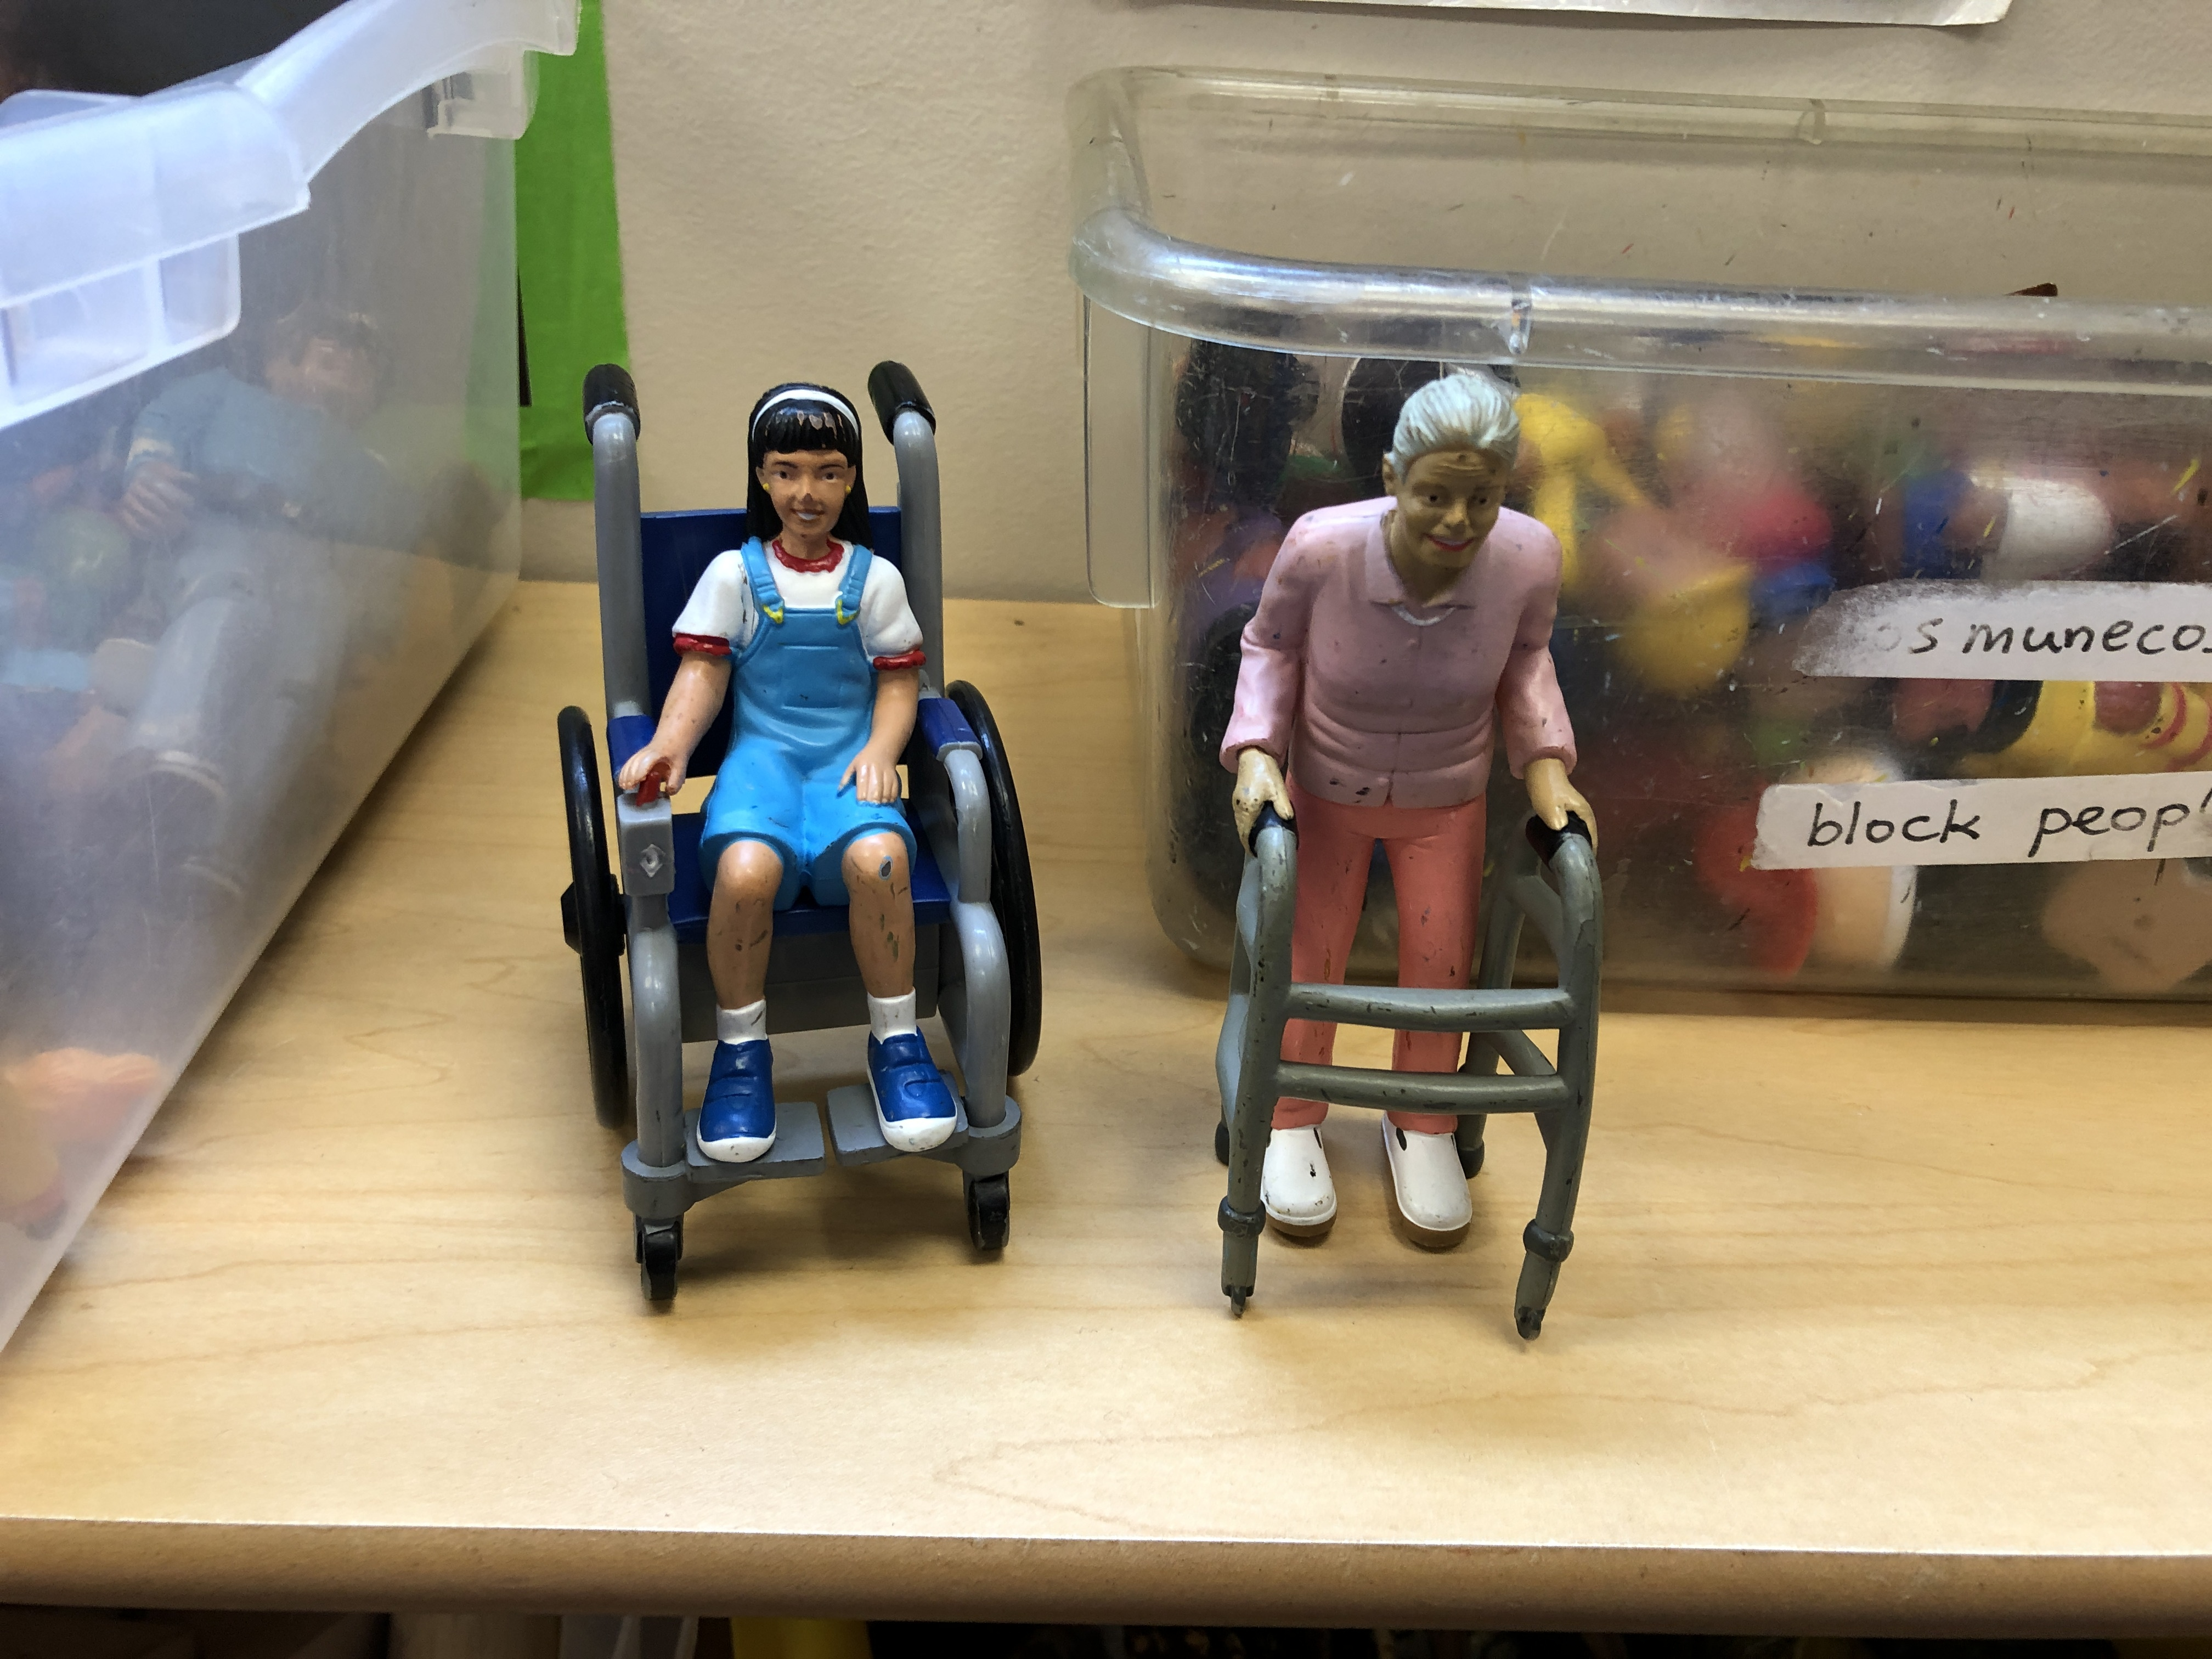 toy figurines in wheelchairs